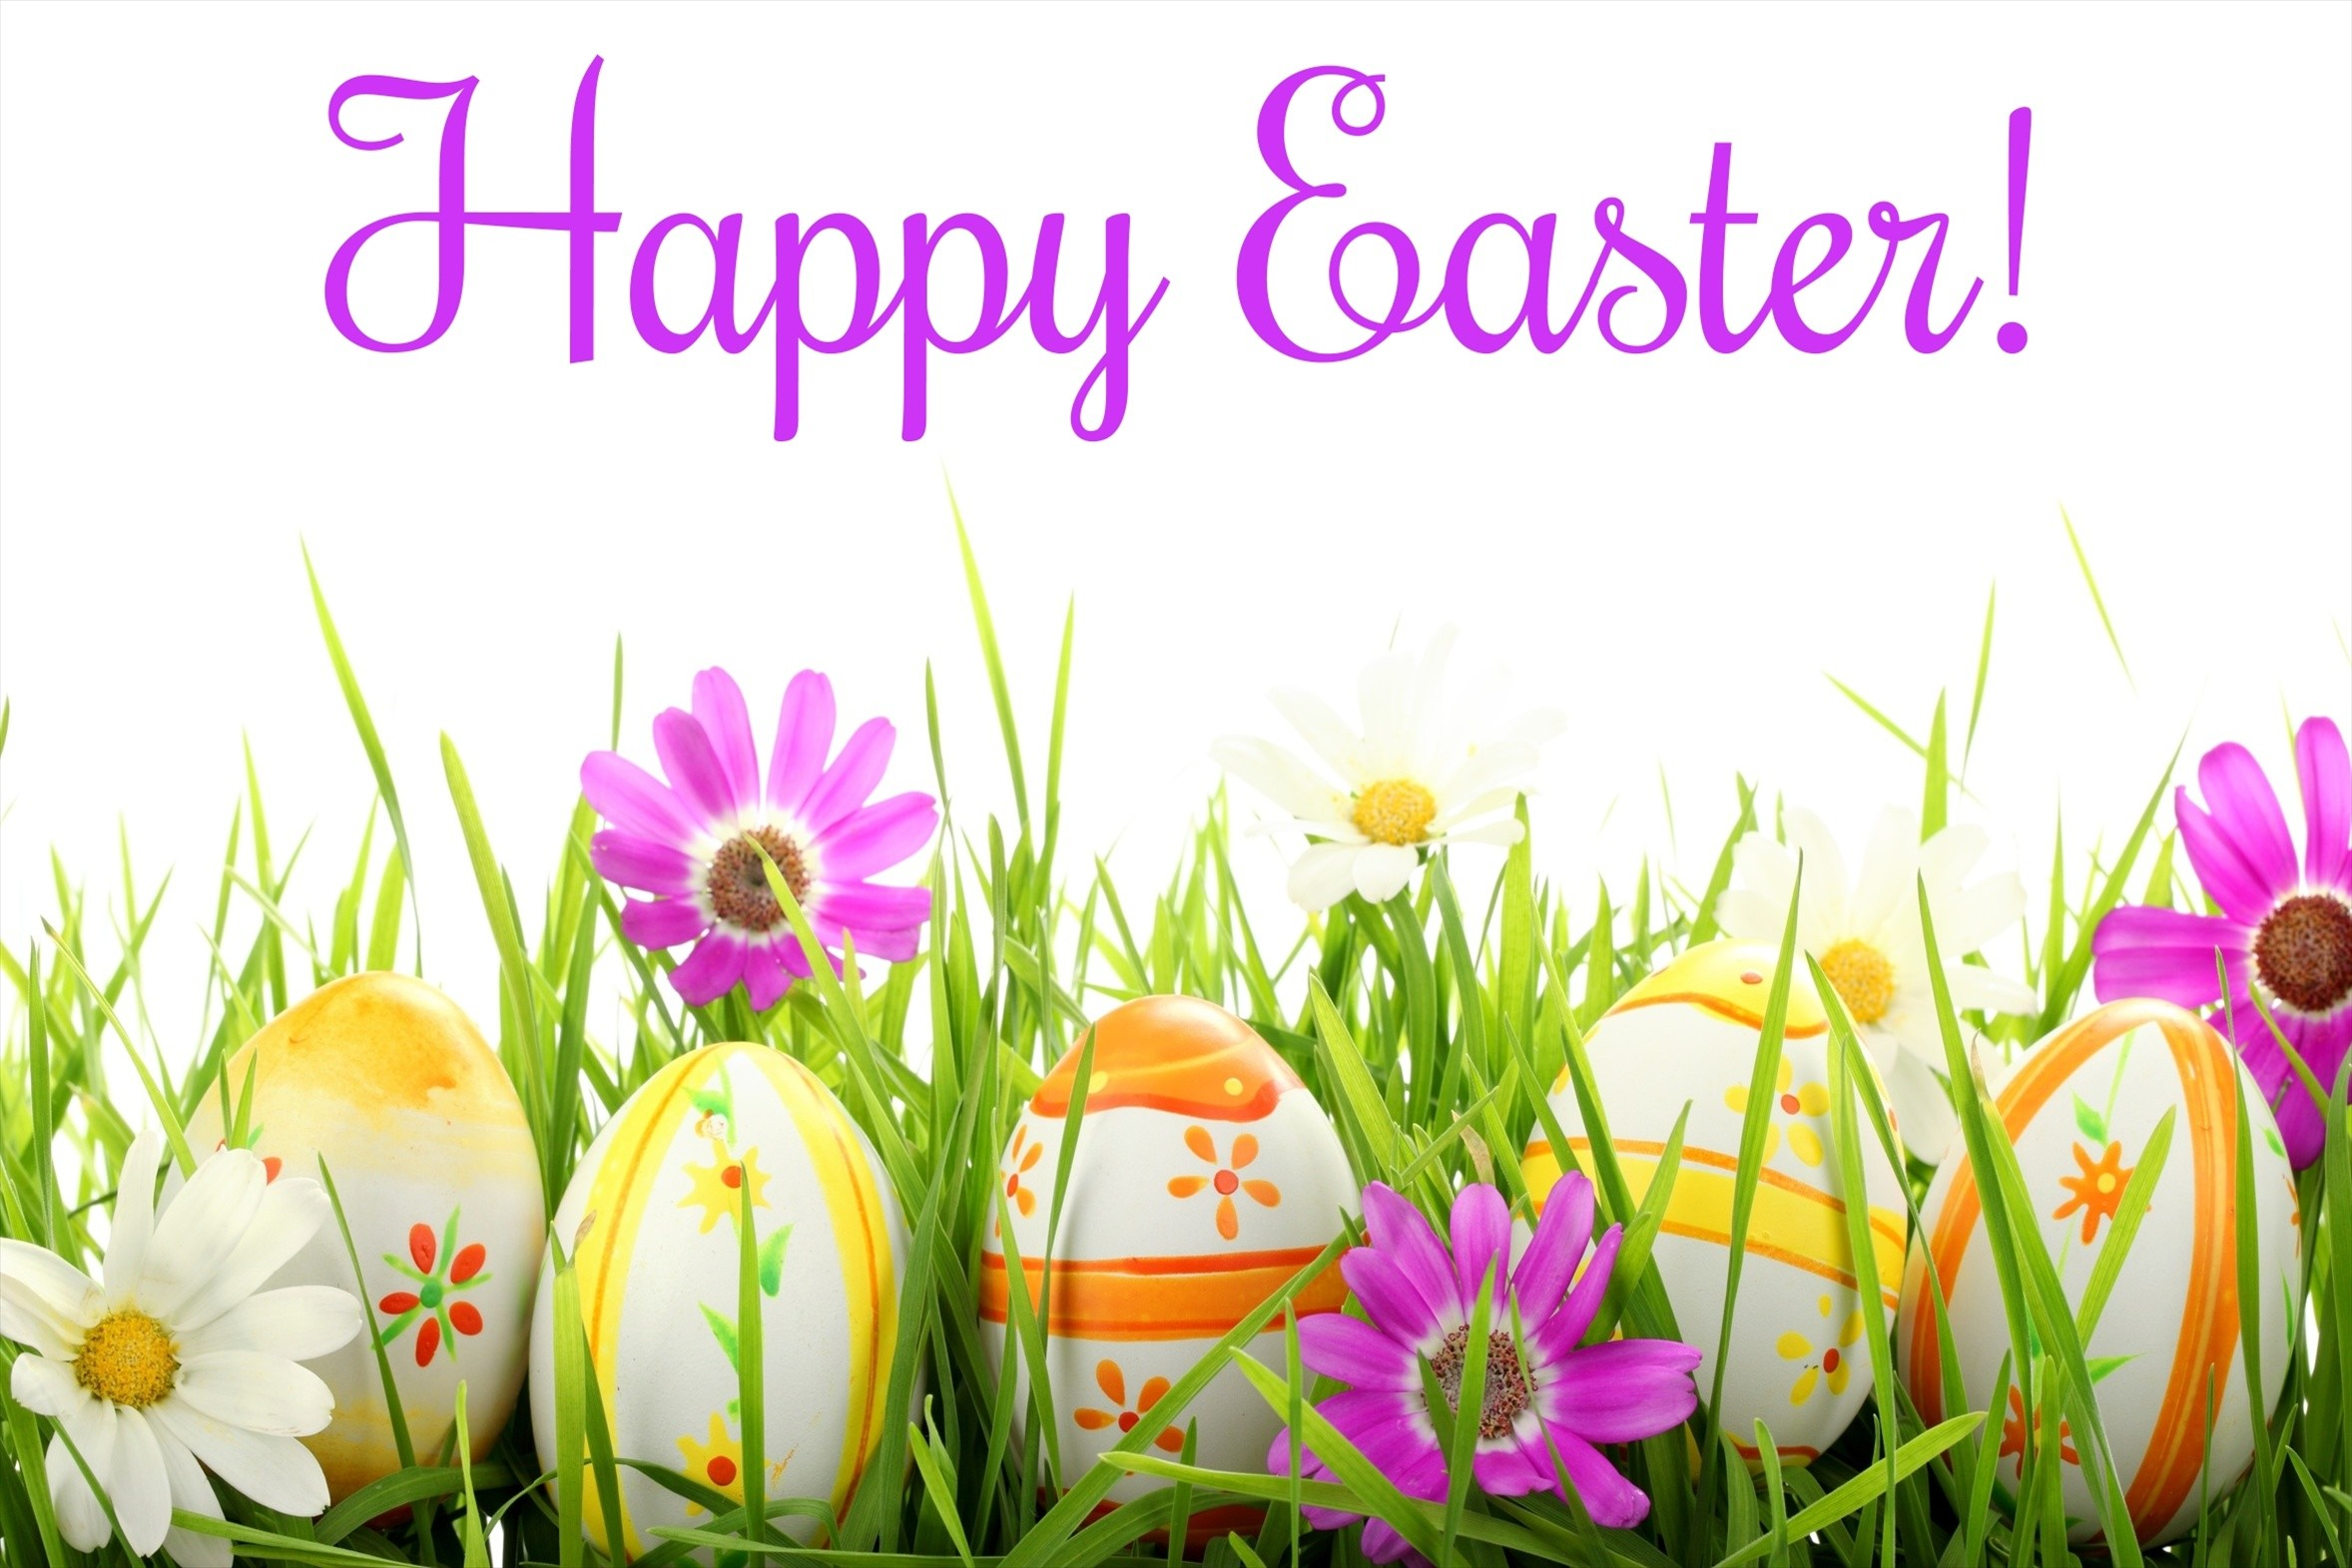 Happy Easter!! – Realty RoundupRealty Roundup